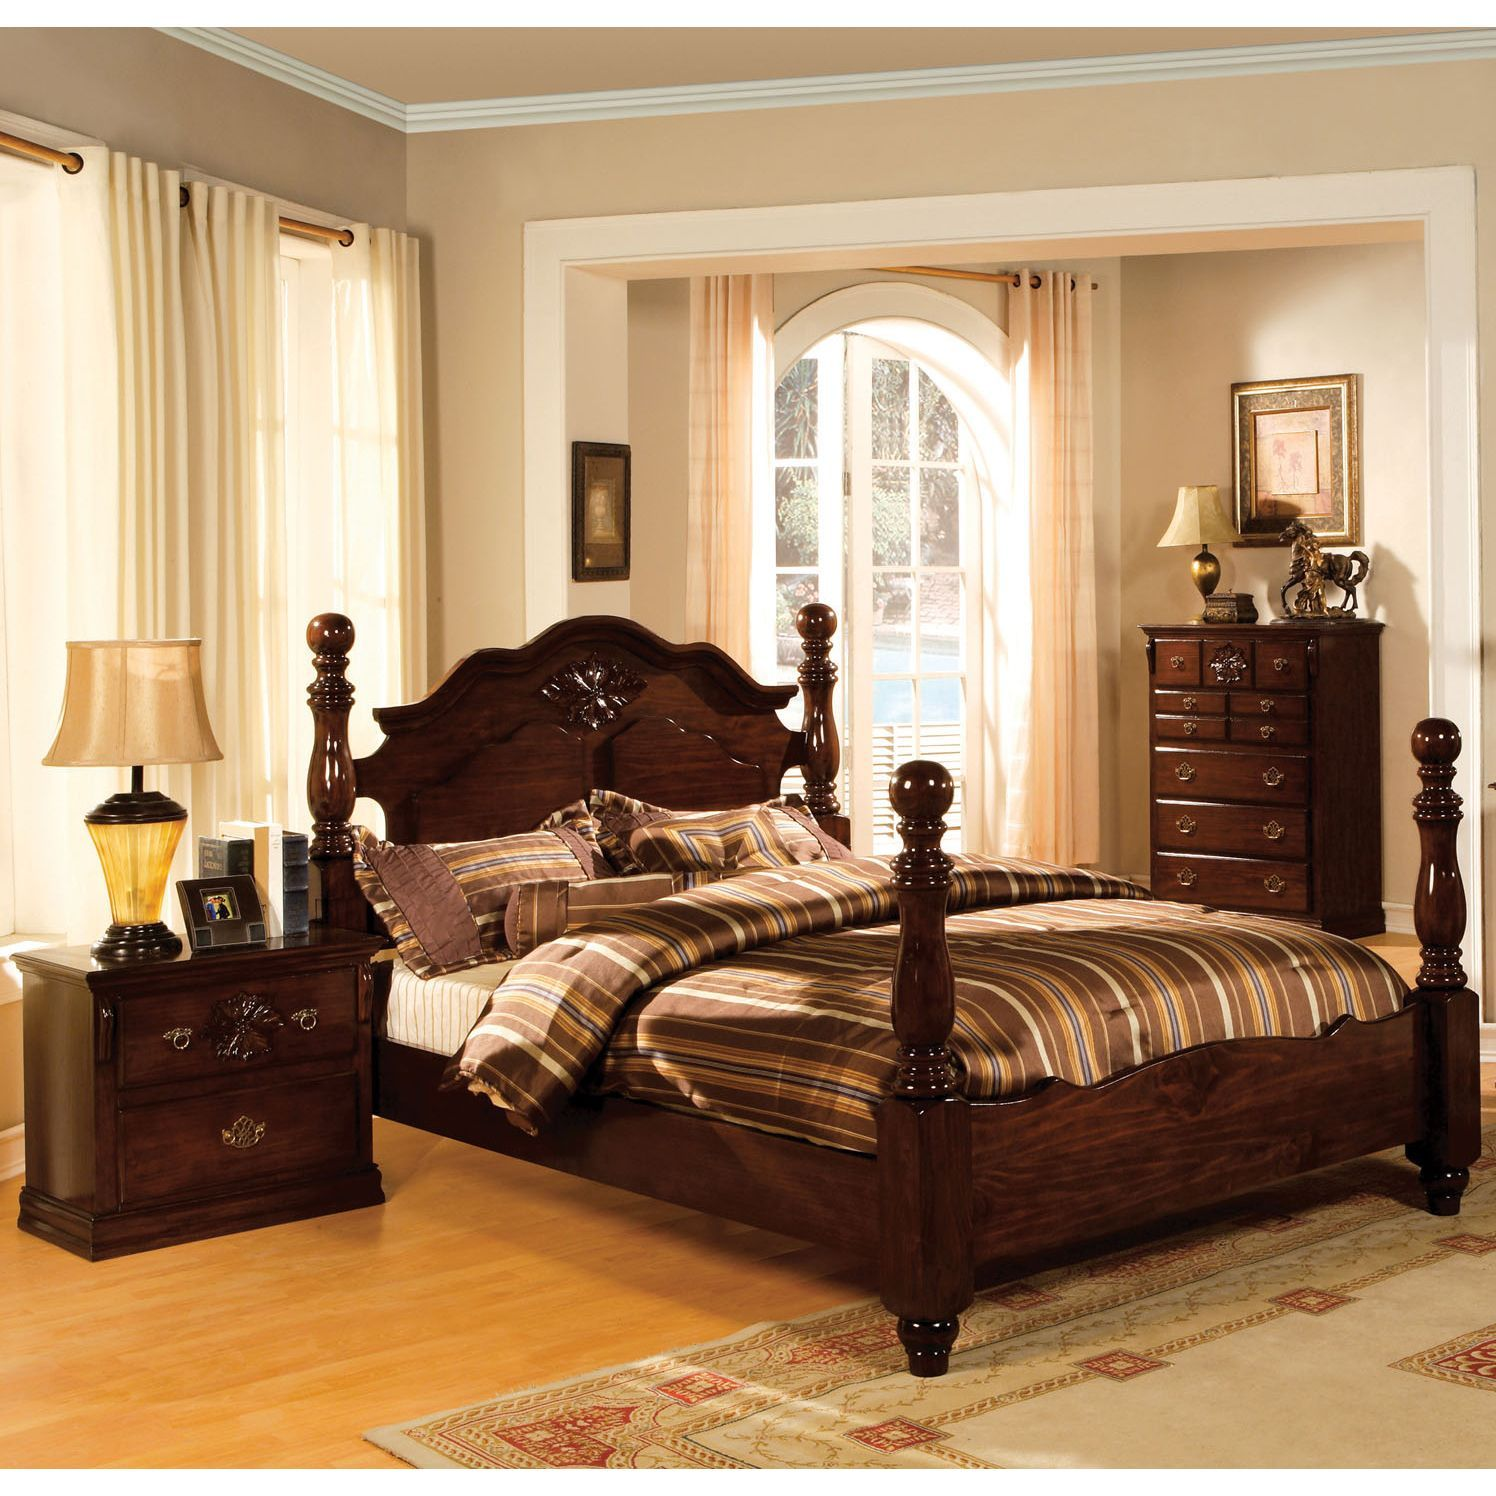 Furniture of America Weston Traditional 3-piece Glossy Dark Pine Poster Bedroom Set (Cal. King), Brown, Size California King